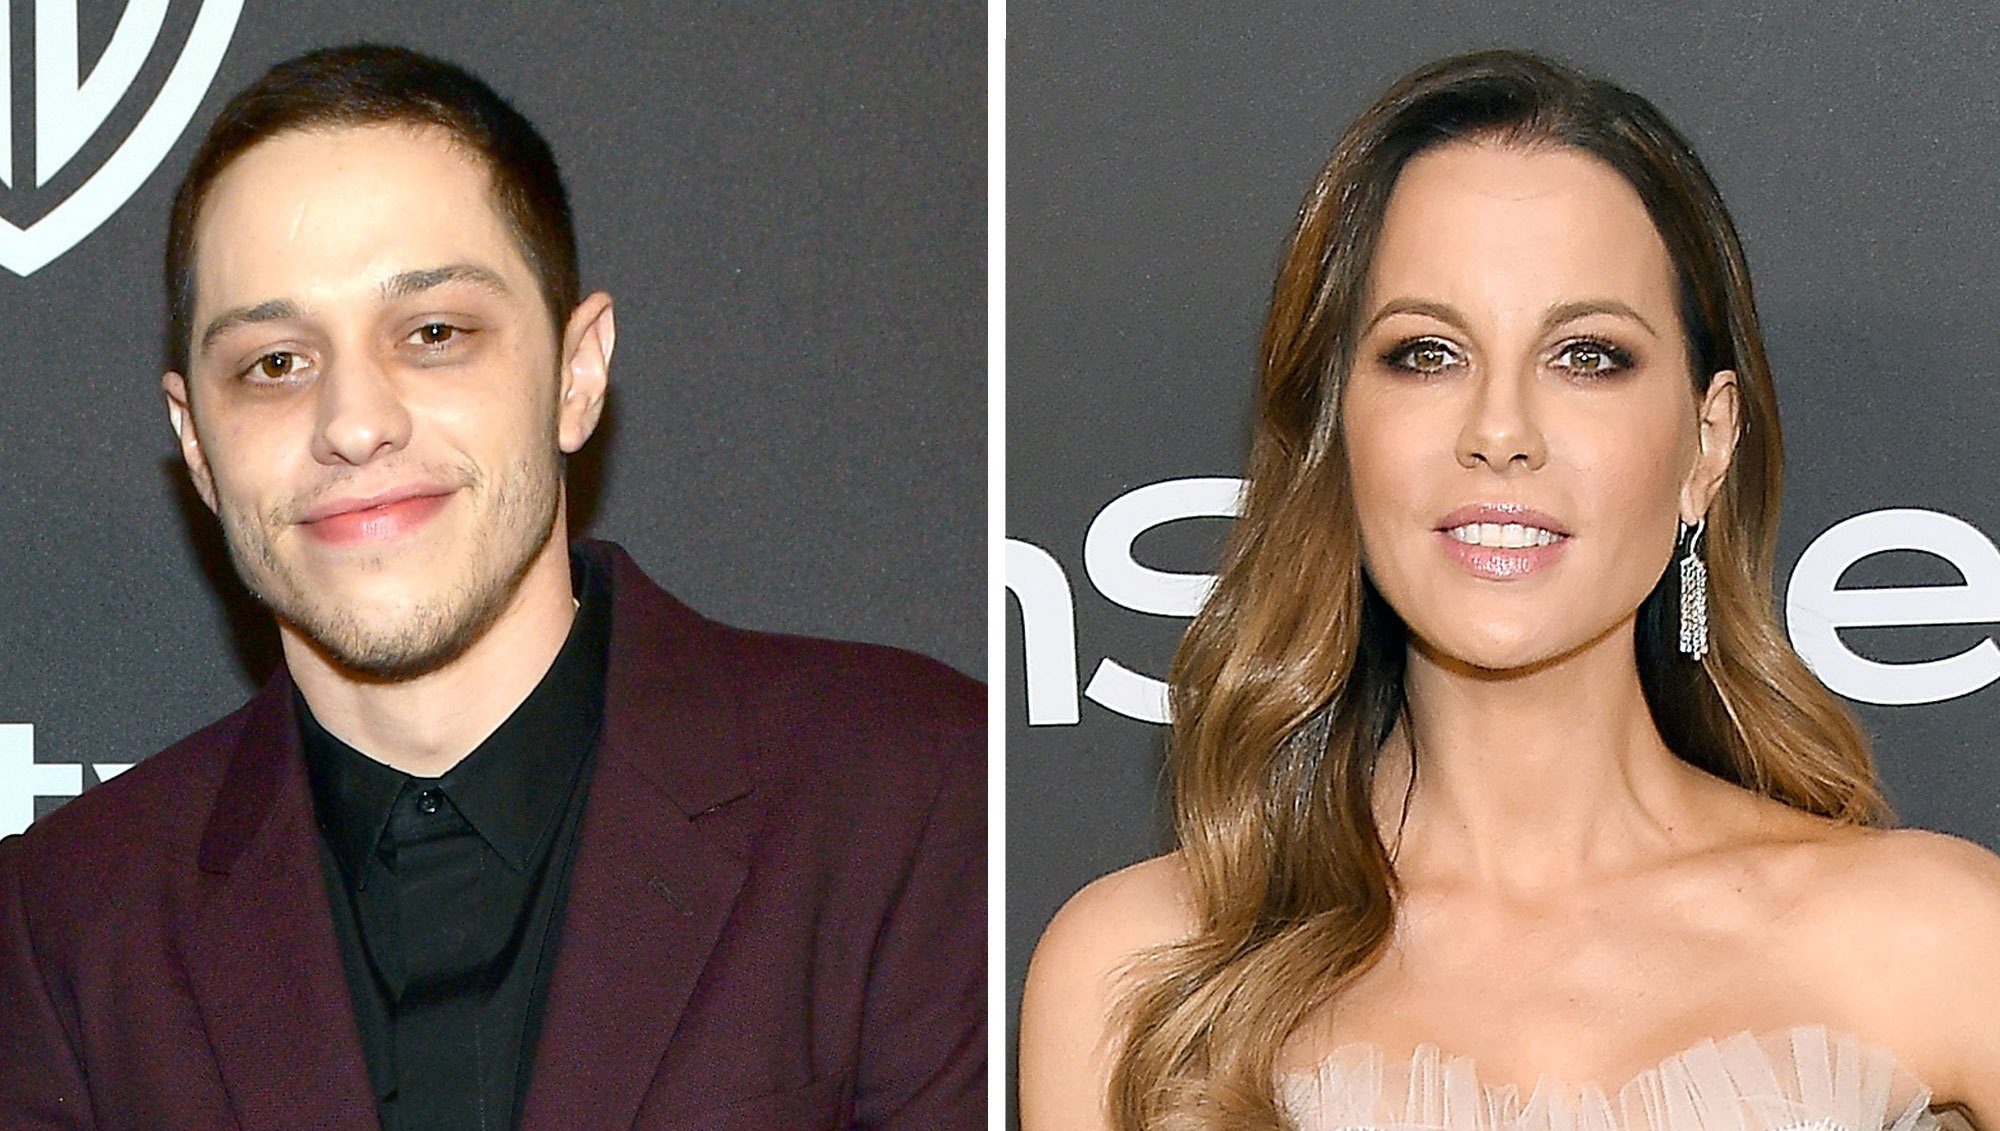 Pete-Davidson-Kate-Beckinsale-smiles-stand-up